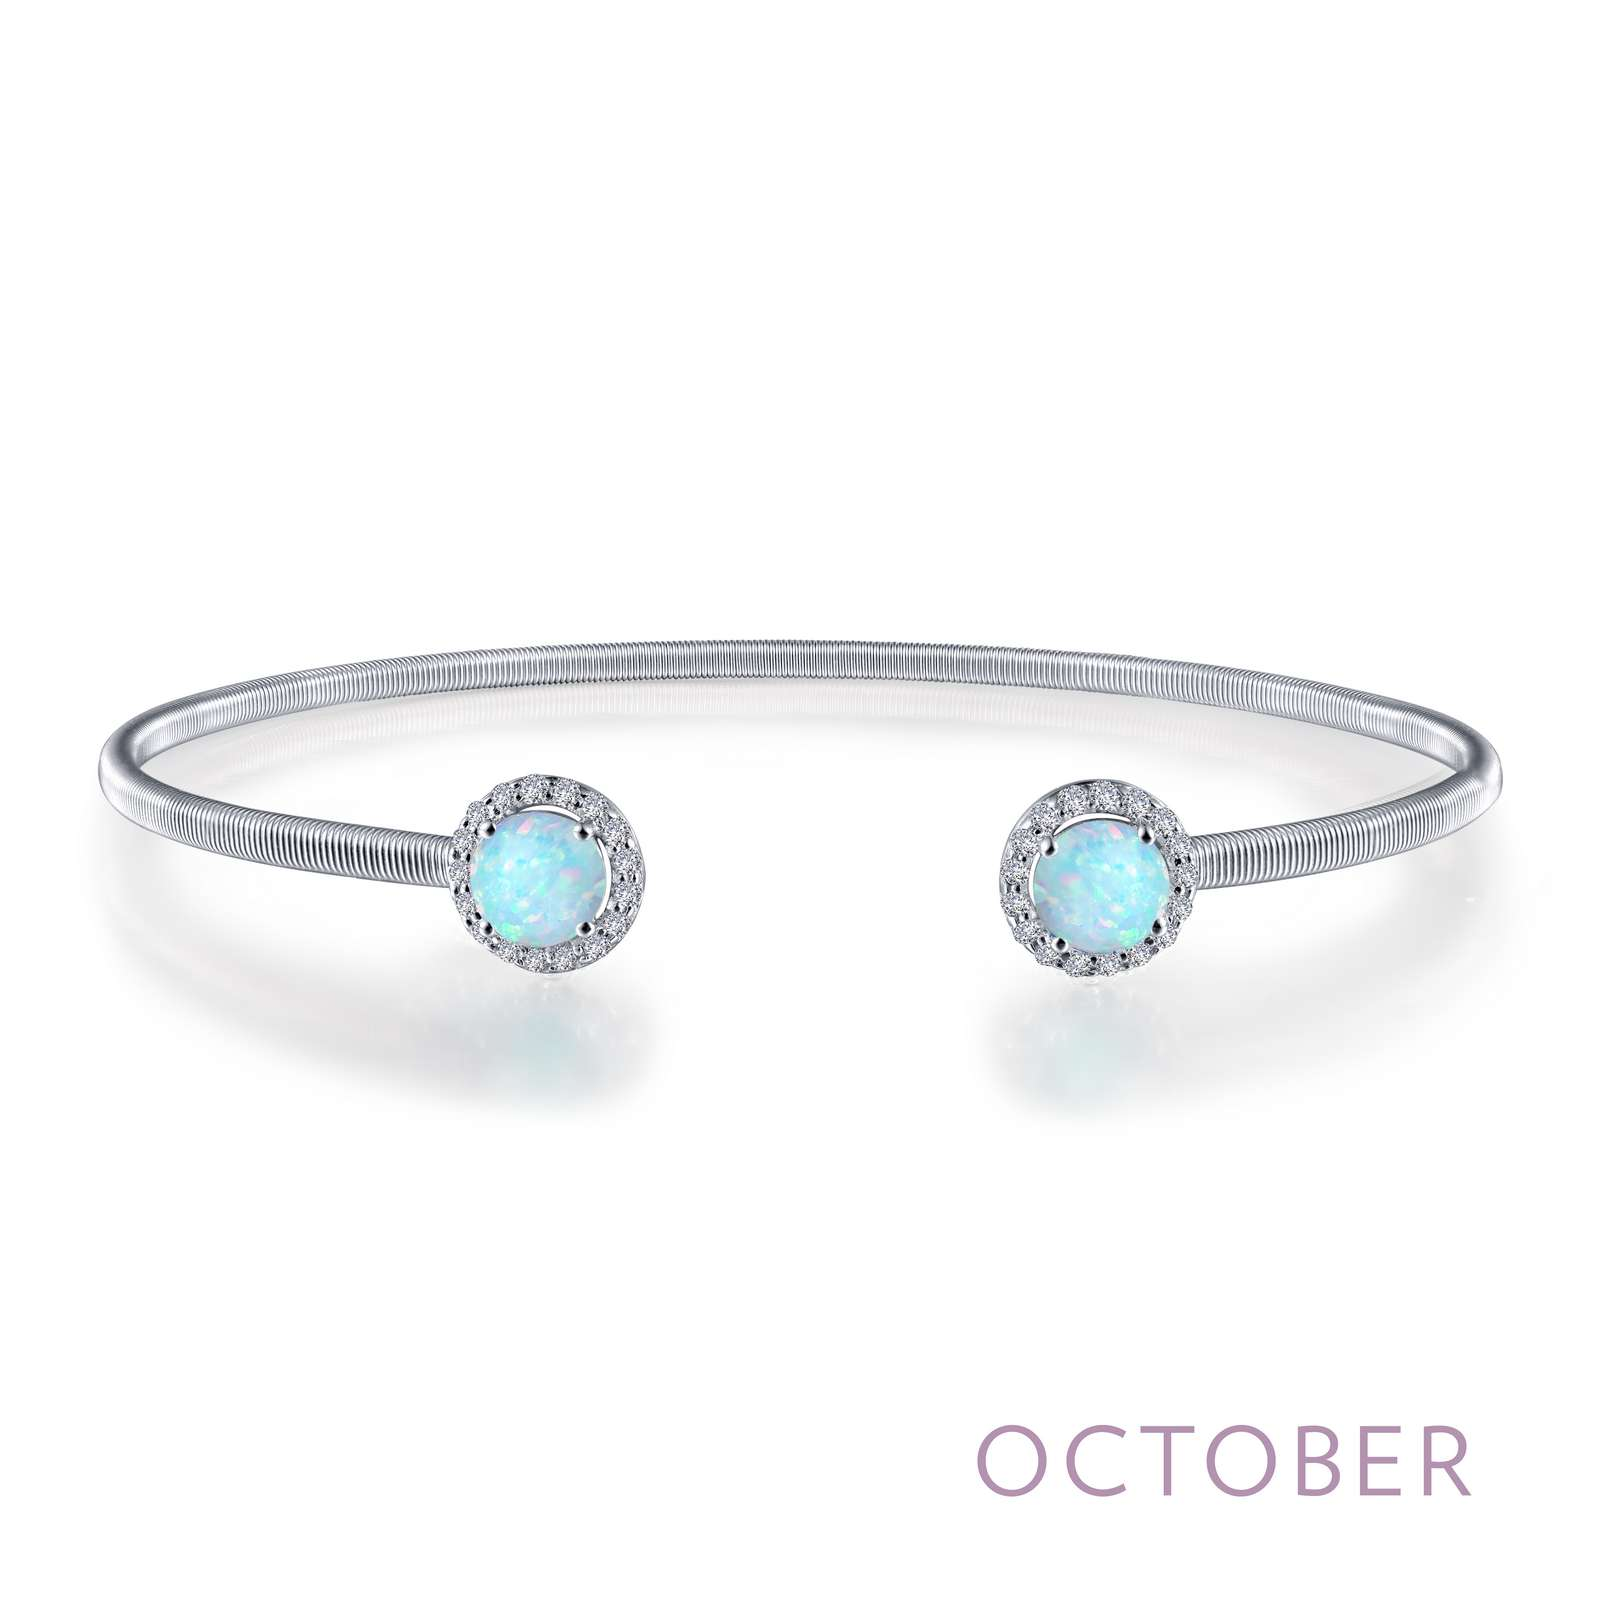 October - Opal. Adorn yourself with Lafonn's birthstone jewelry. This flexible stackable open cuff halo bangle bracelet is set with Lafonn's signature Lassaire simulated diamonds and simulated opals. Bracelet is in sterling silver bonded with platinum.